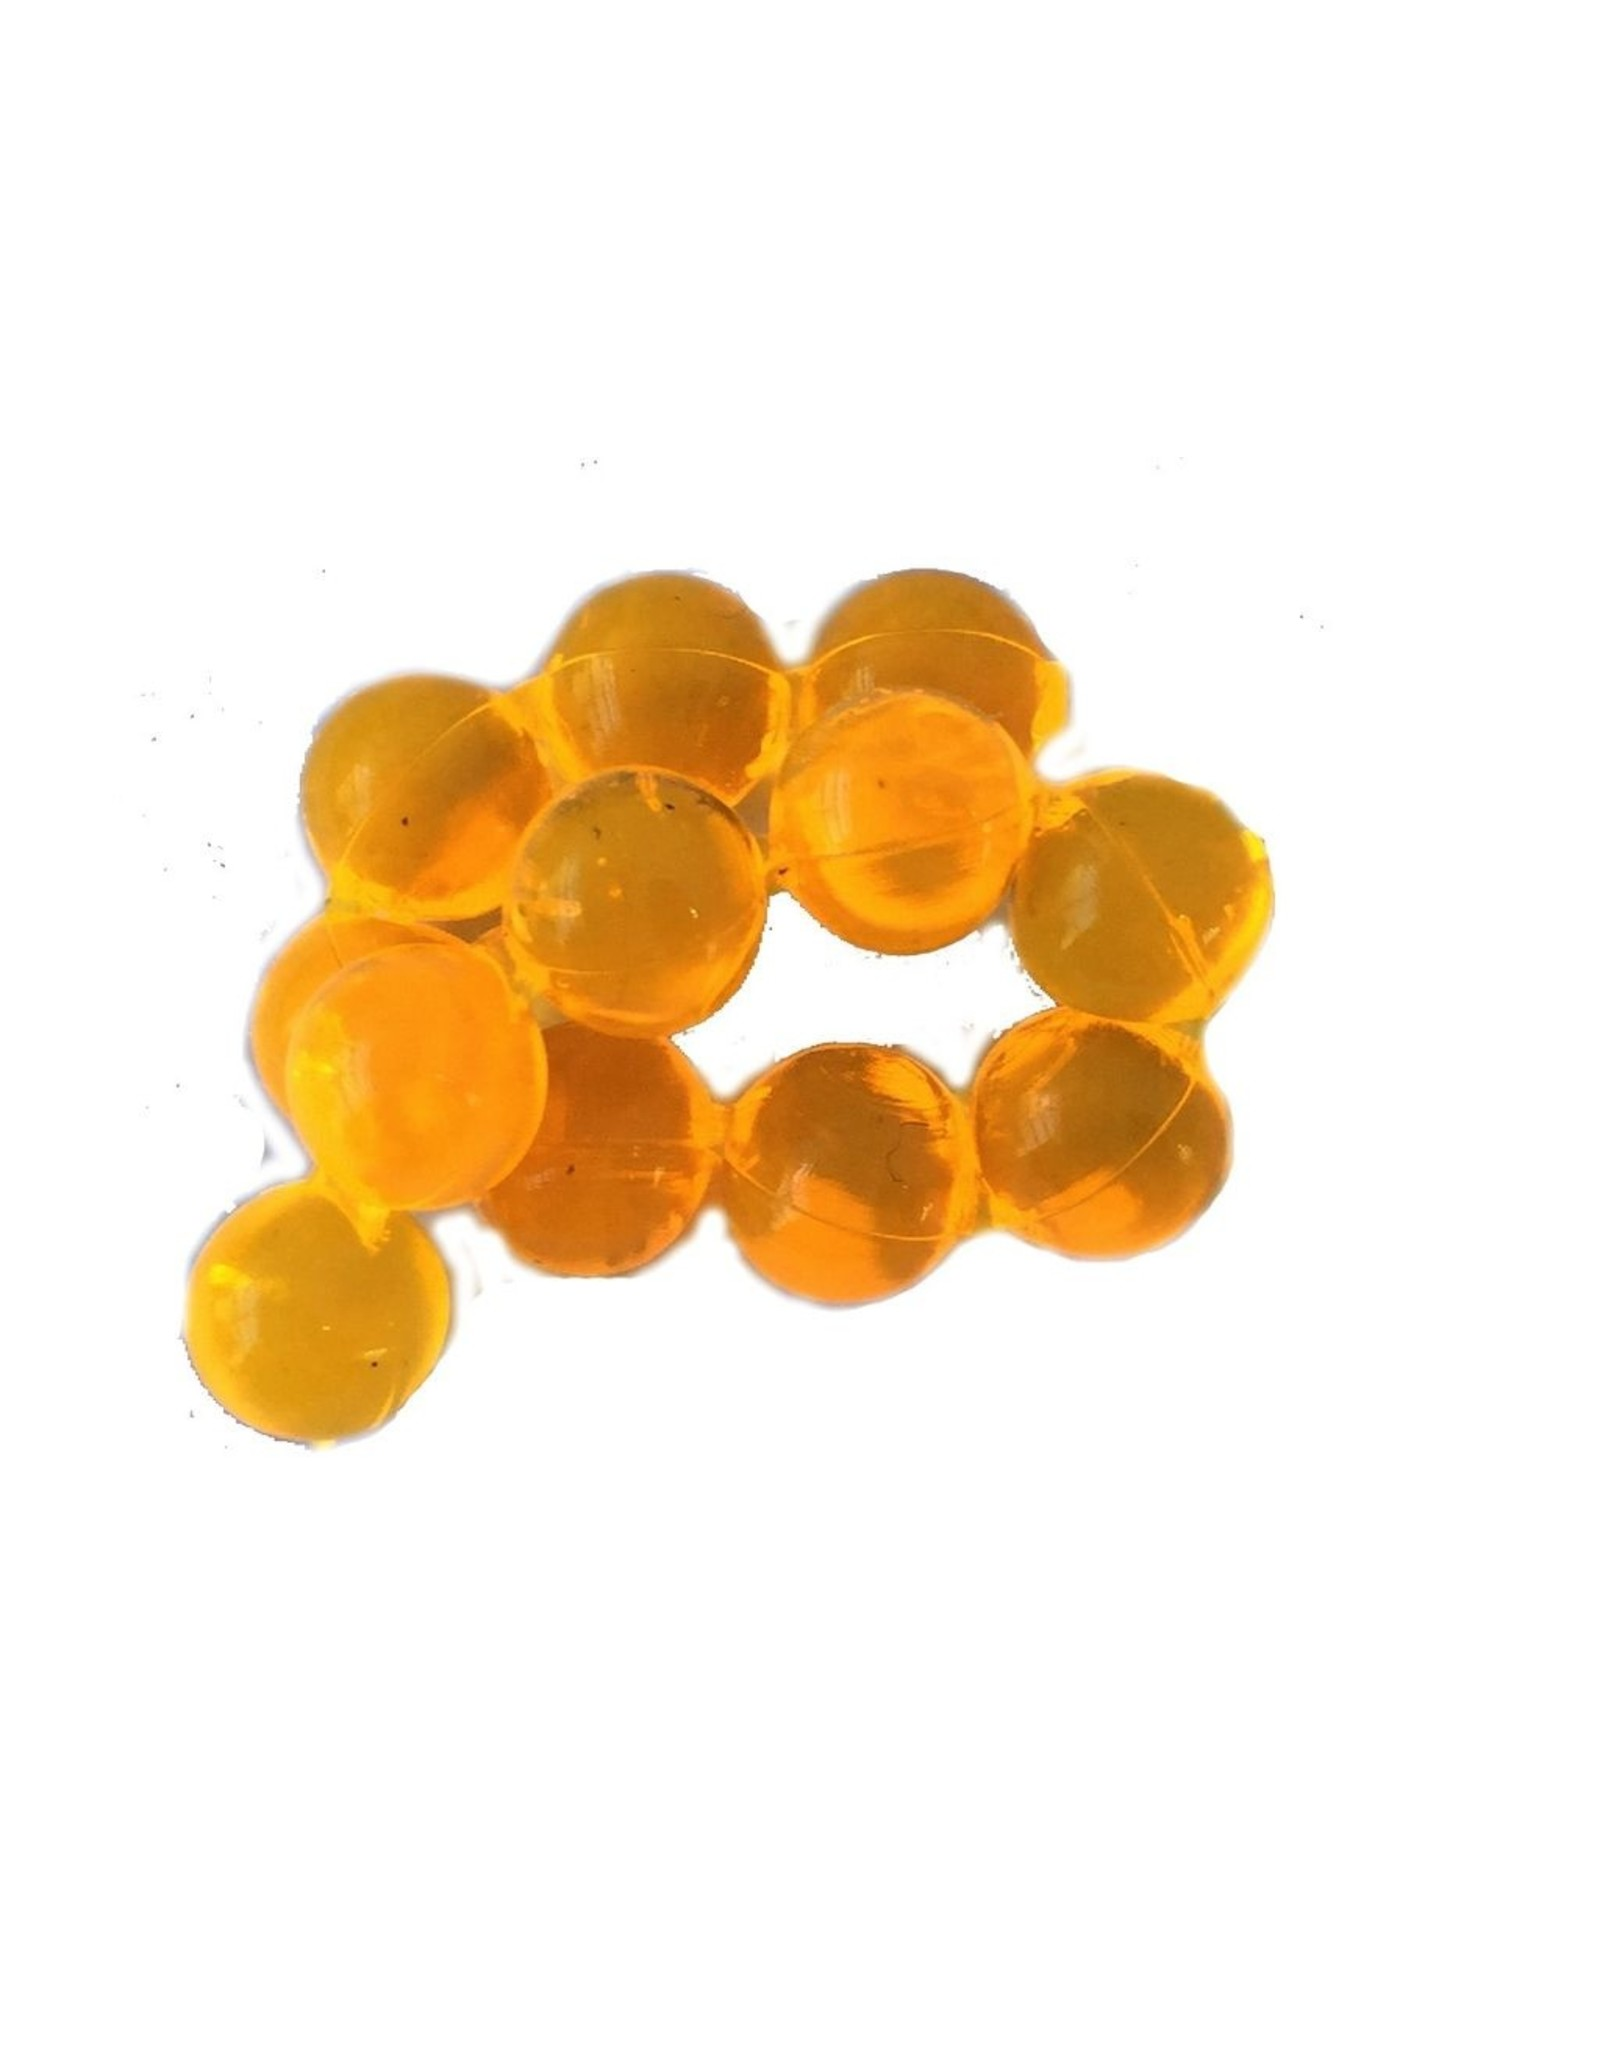 MFC Otter's Soft Egg Material Apricot 4mm